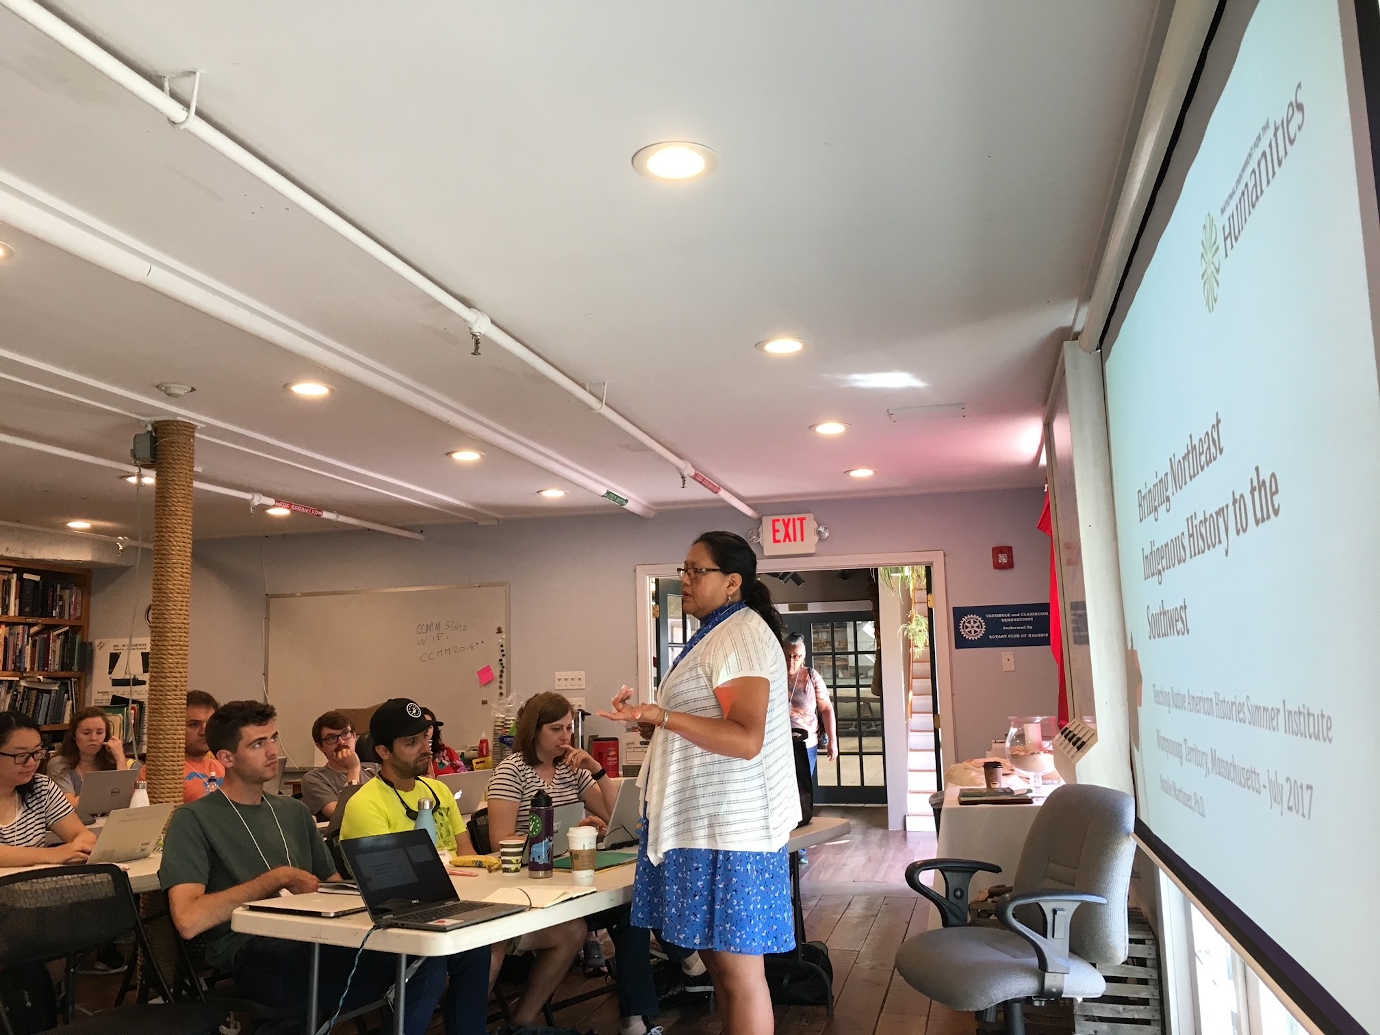 K-12 attend a lecture as part of *Teaching Native American Histories*. Image Courtesy of University of Massachusetts, Amherst